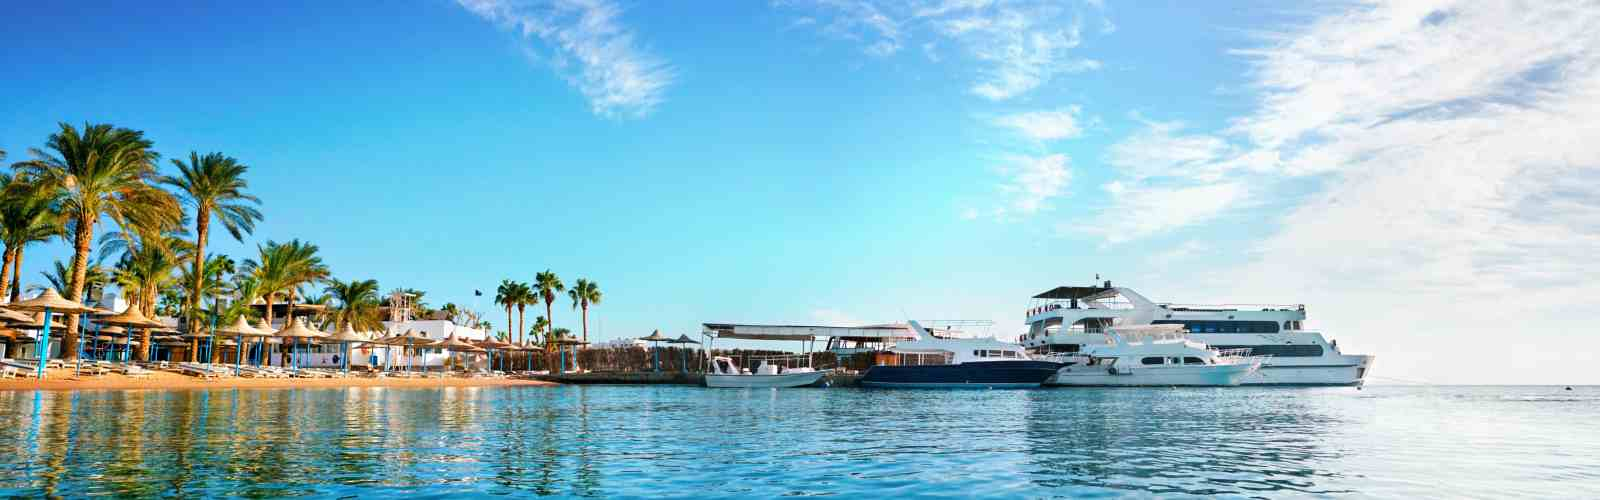 Hurghada City | Things To Do In Hurghada